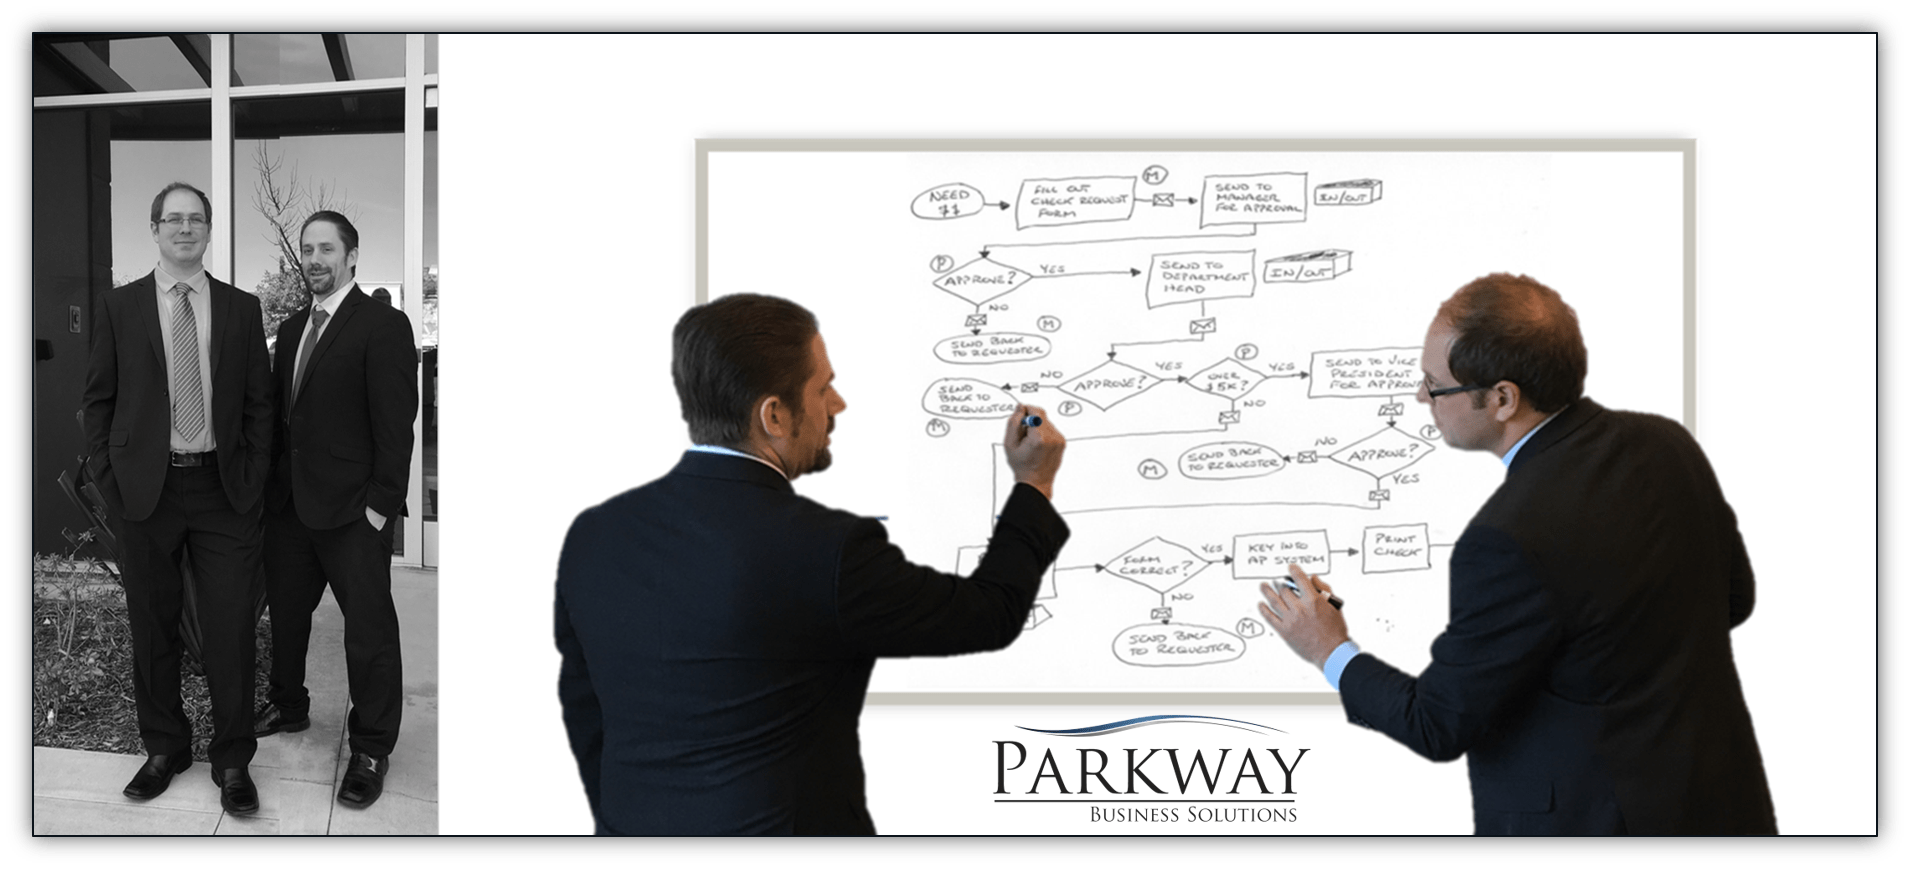 Ledgersync Named Parkway Business Solutions as Top Tech Accounting Firm for 2018